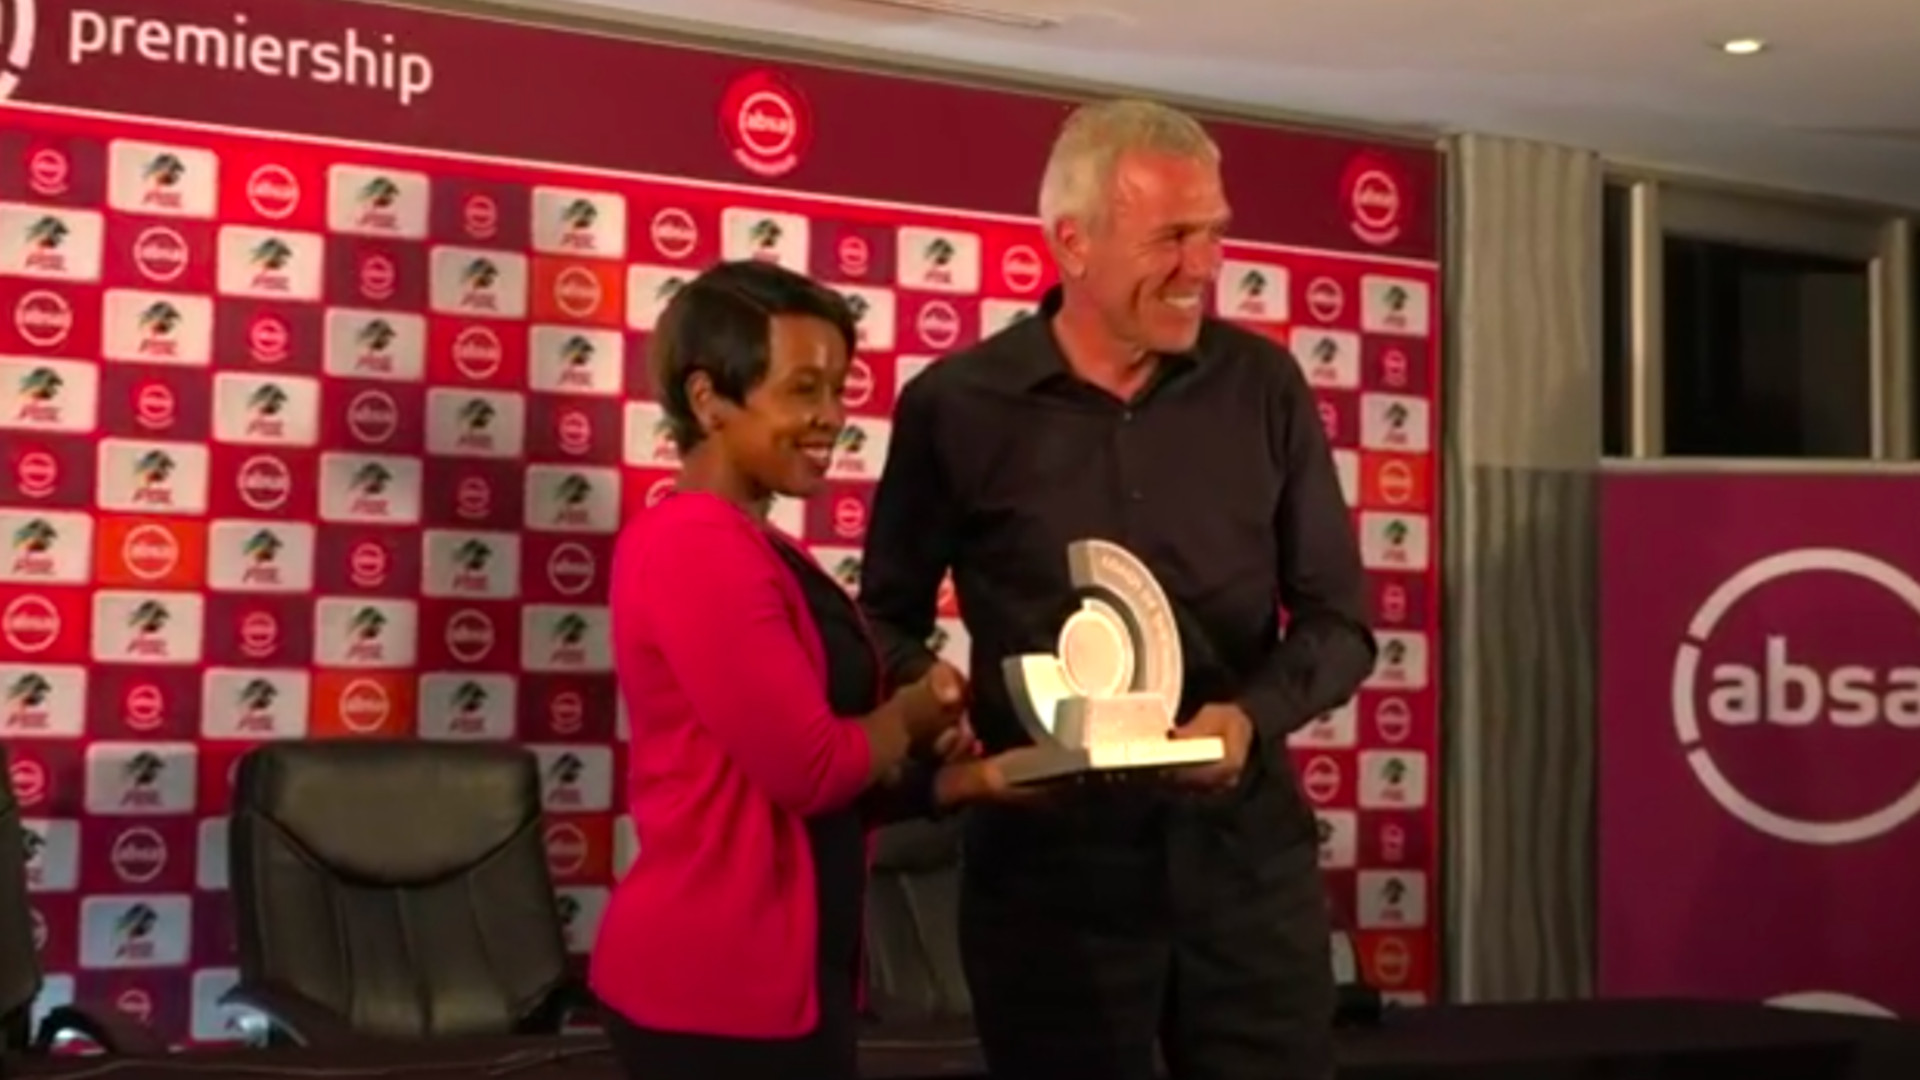 Absa Premiership | Kaizer Chiefs | Ernst Middendorp makes history